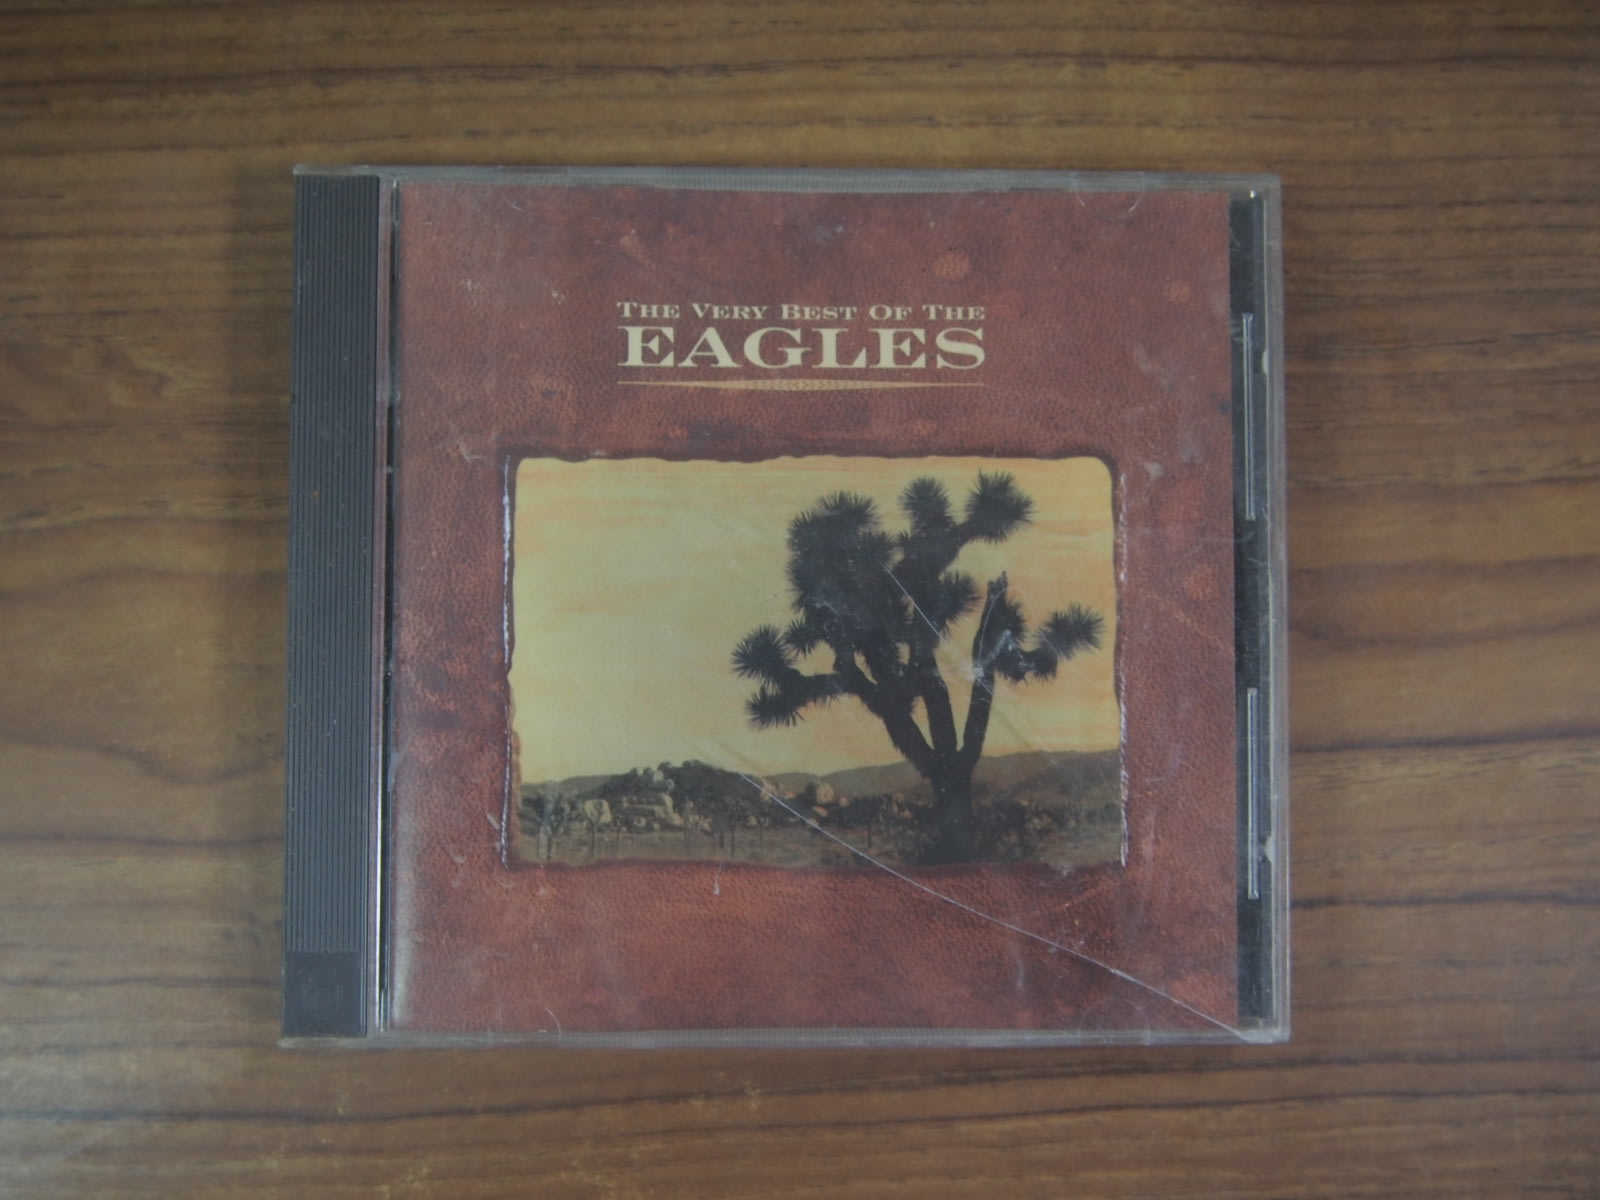 ◎MWM◎【二手CD】The Very Best Of The Eagles 台版,曲目本